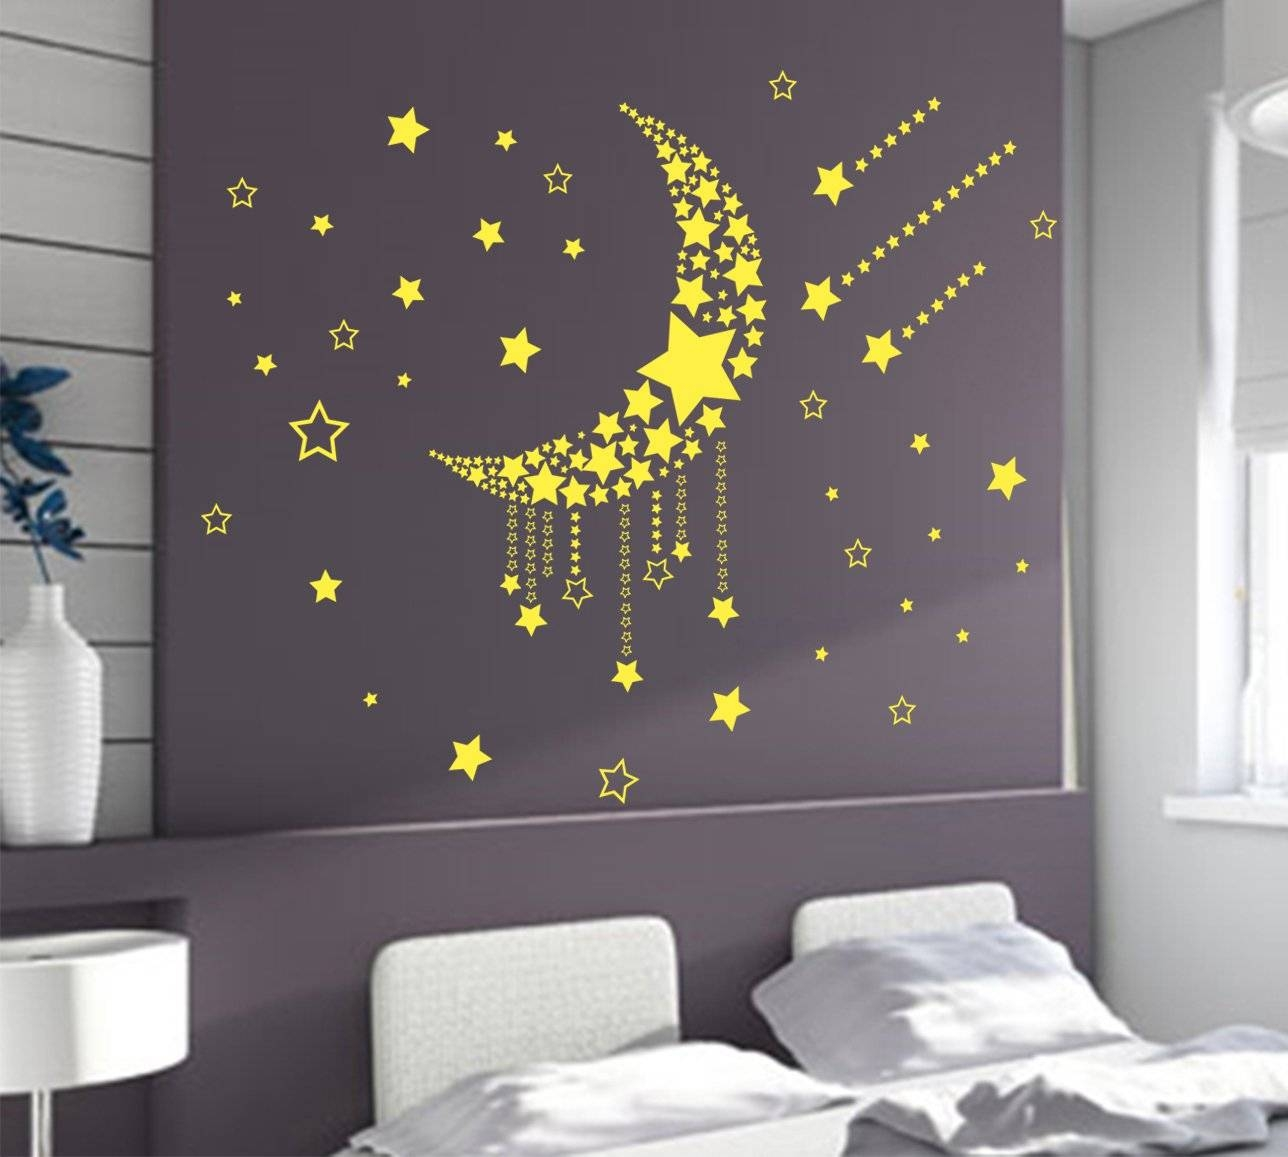 Bedroom : Bedroom Wall Art 94 Trendy Bed Ideas Mesmerizing Bedroom Within Most Popular Bedroom Wall Art (View 17 of 25)